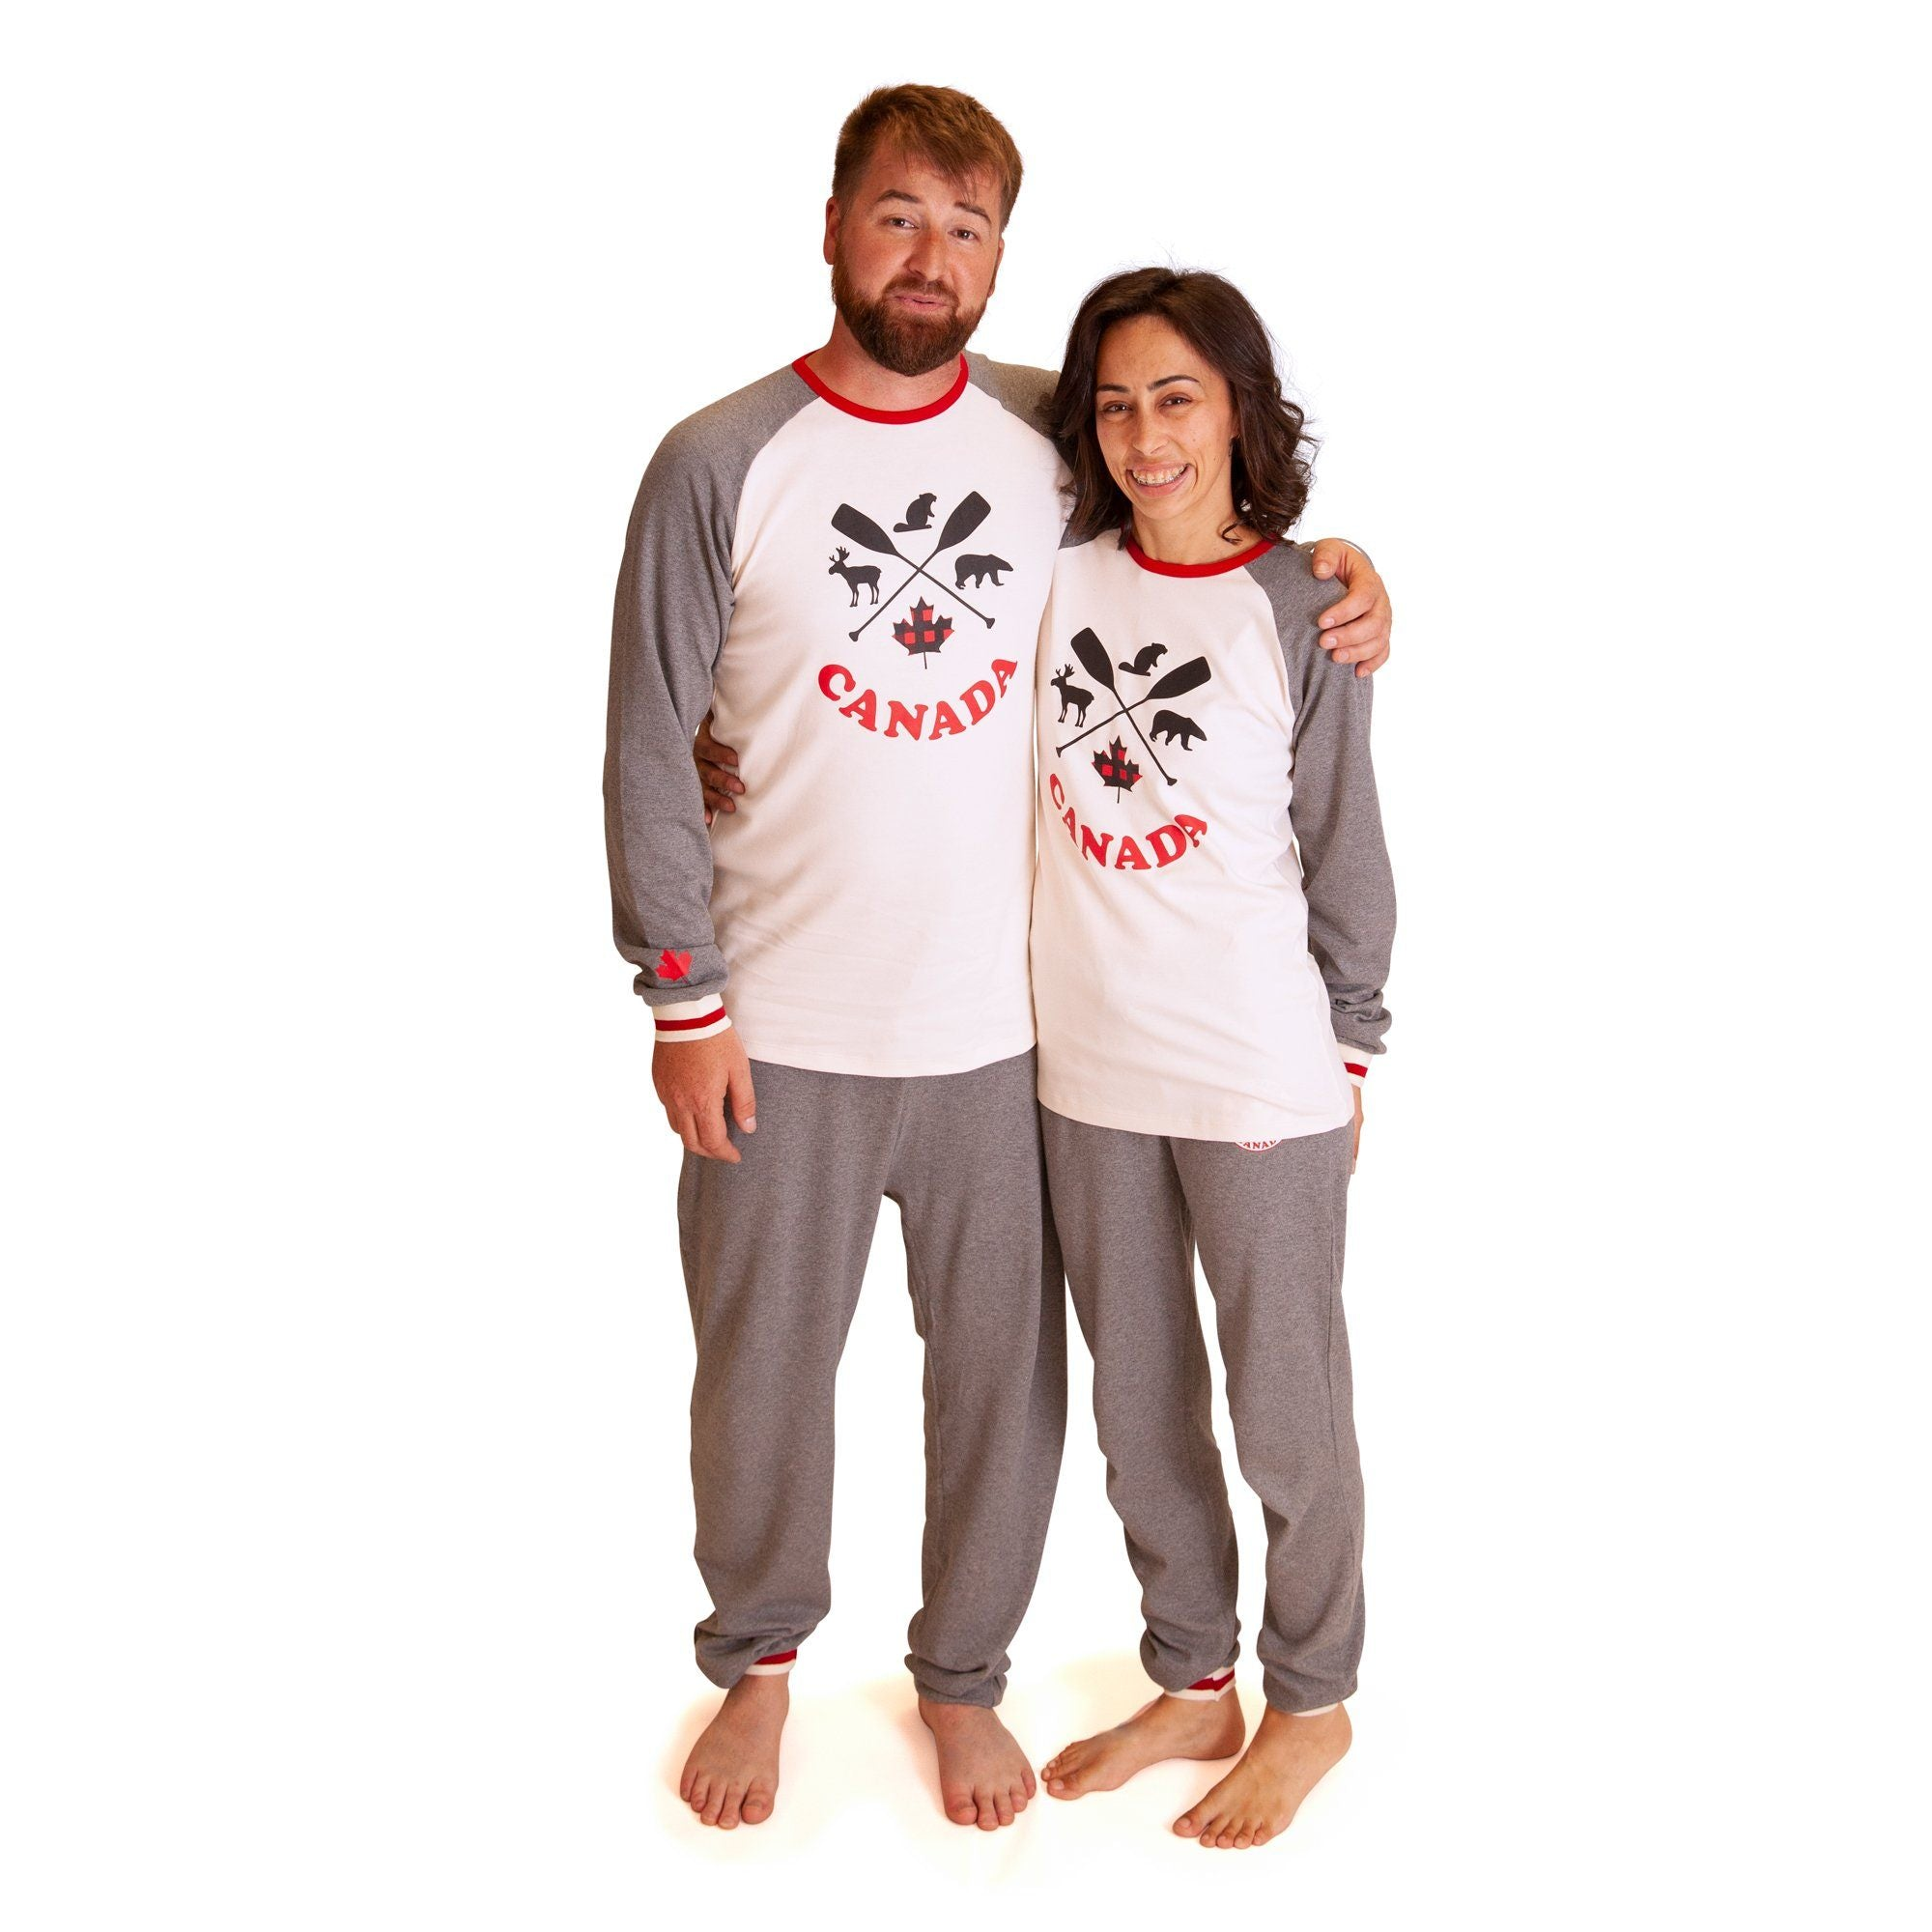 Man and woman in matching pjs, also match kids, toddlers, doll and dog